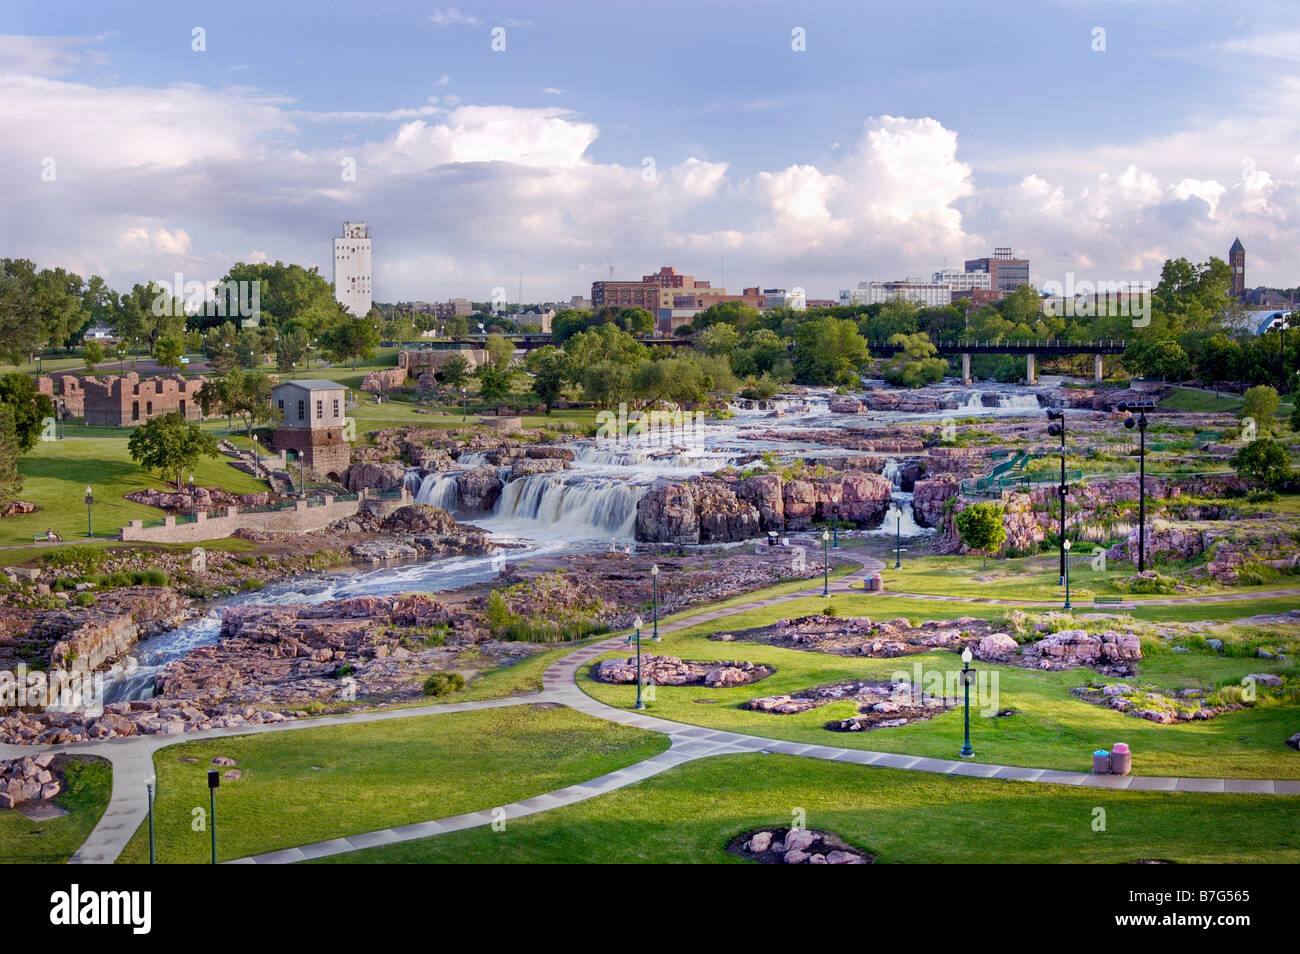 waterfall, Big Sioux River, Sioux Falls, SD - Stock Image